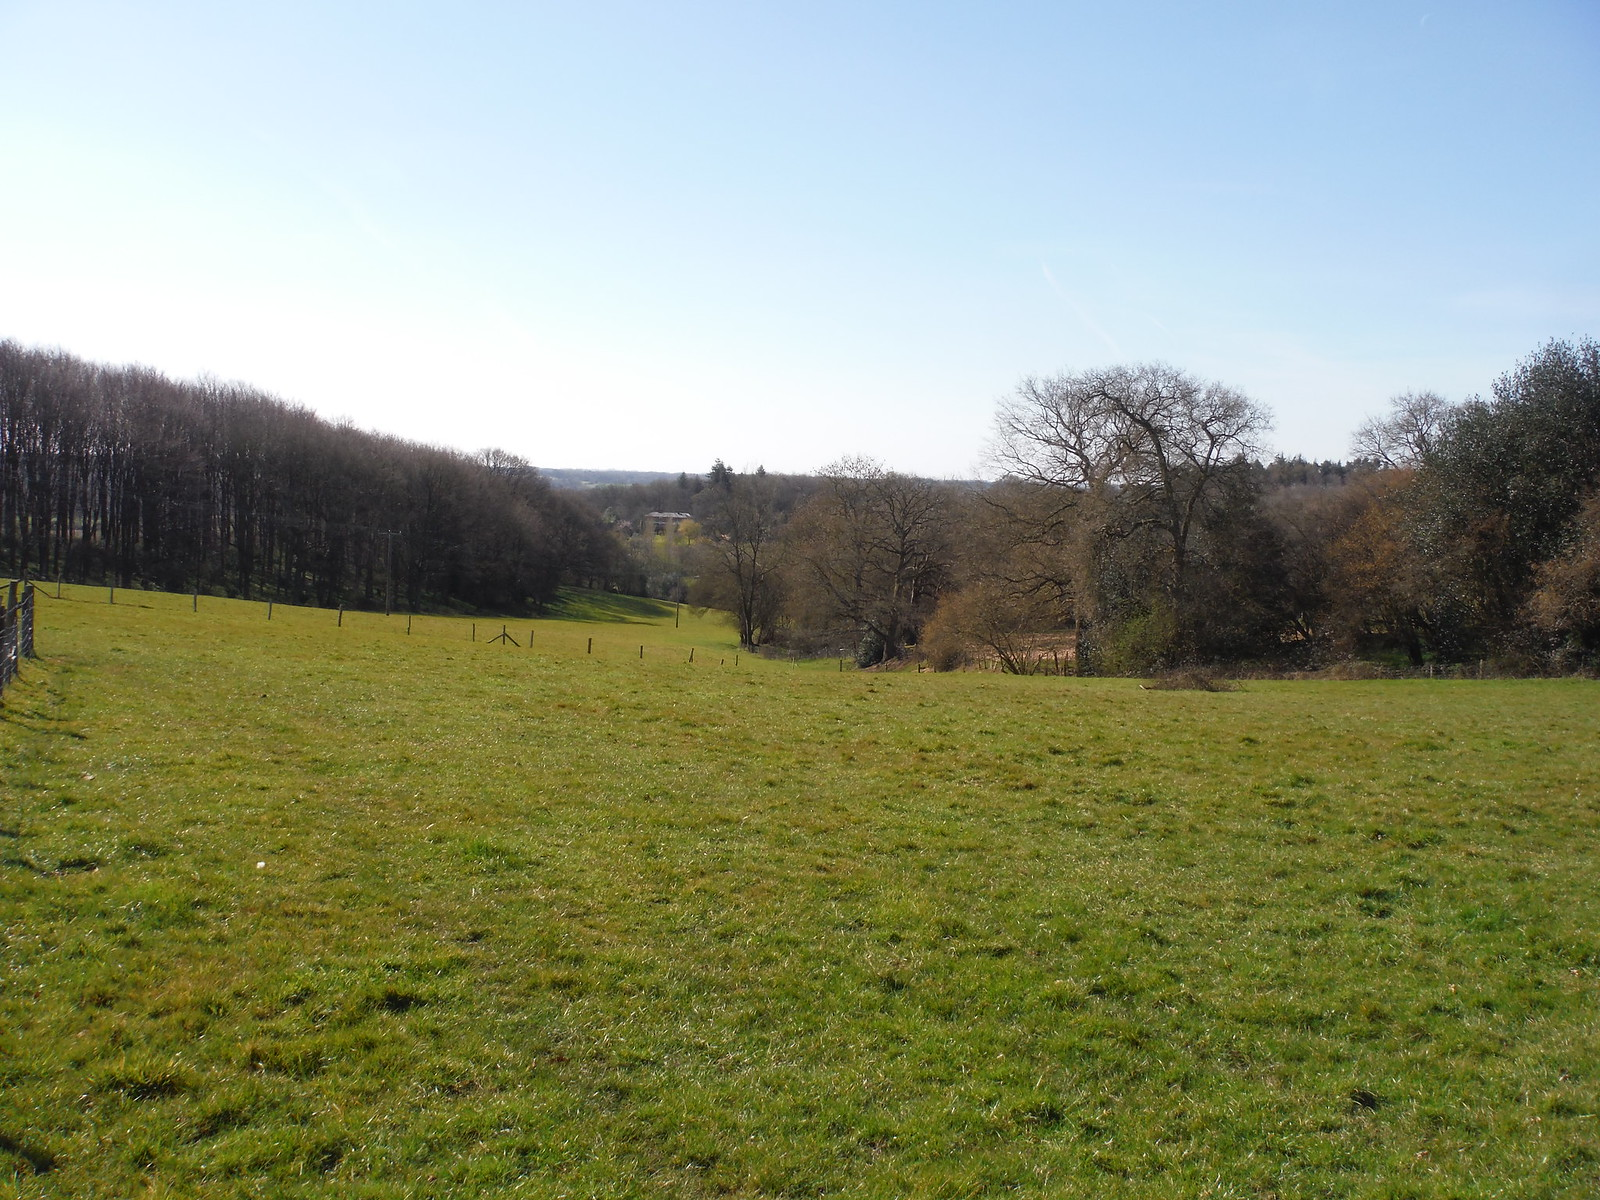 Southerly View from Beenham Church SWC Walk 260 Aldermaston to Woolhampton [Midgham Station] (via Frilsham)